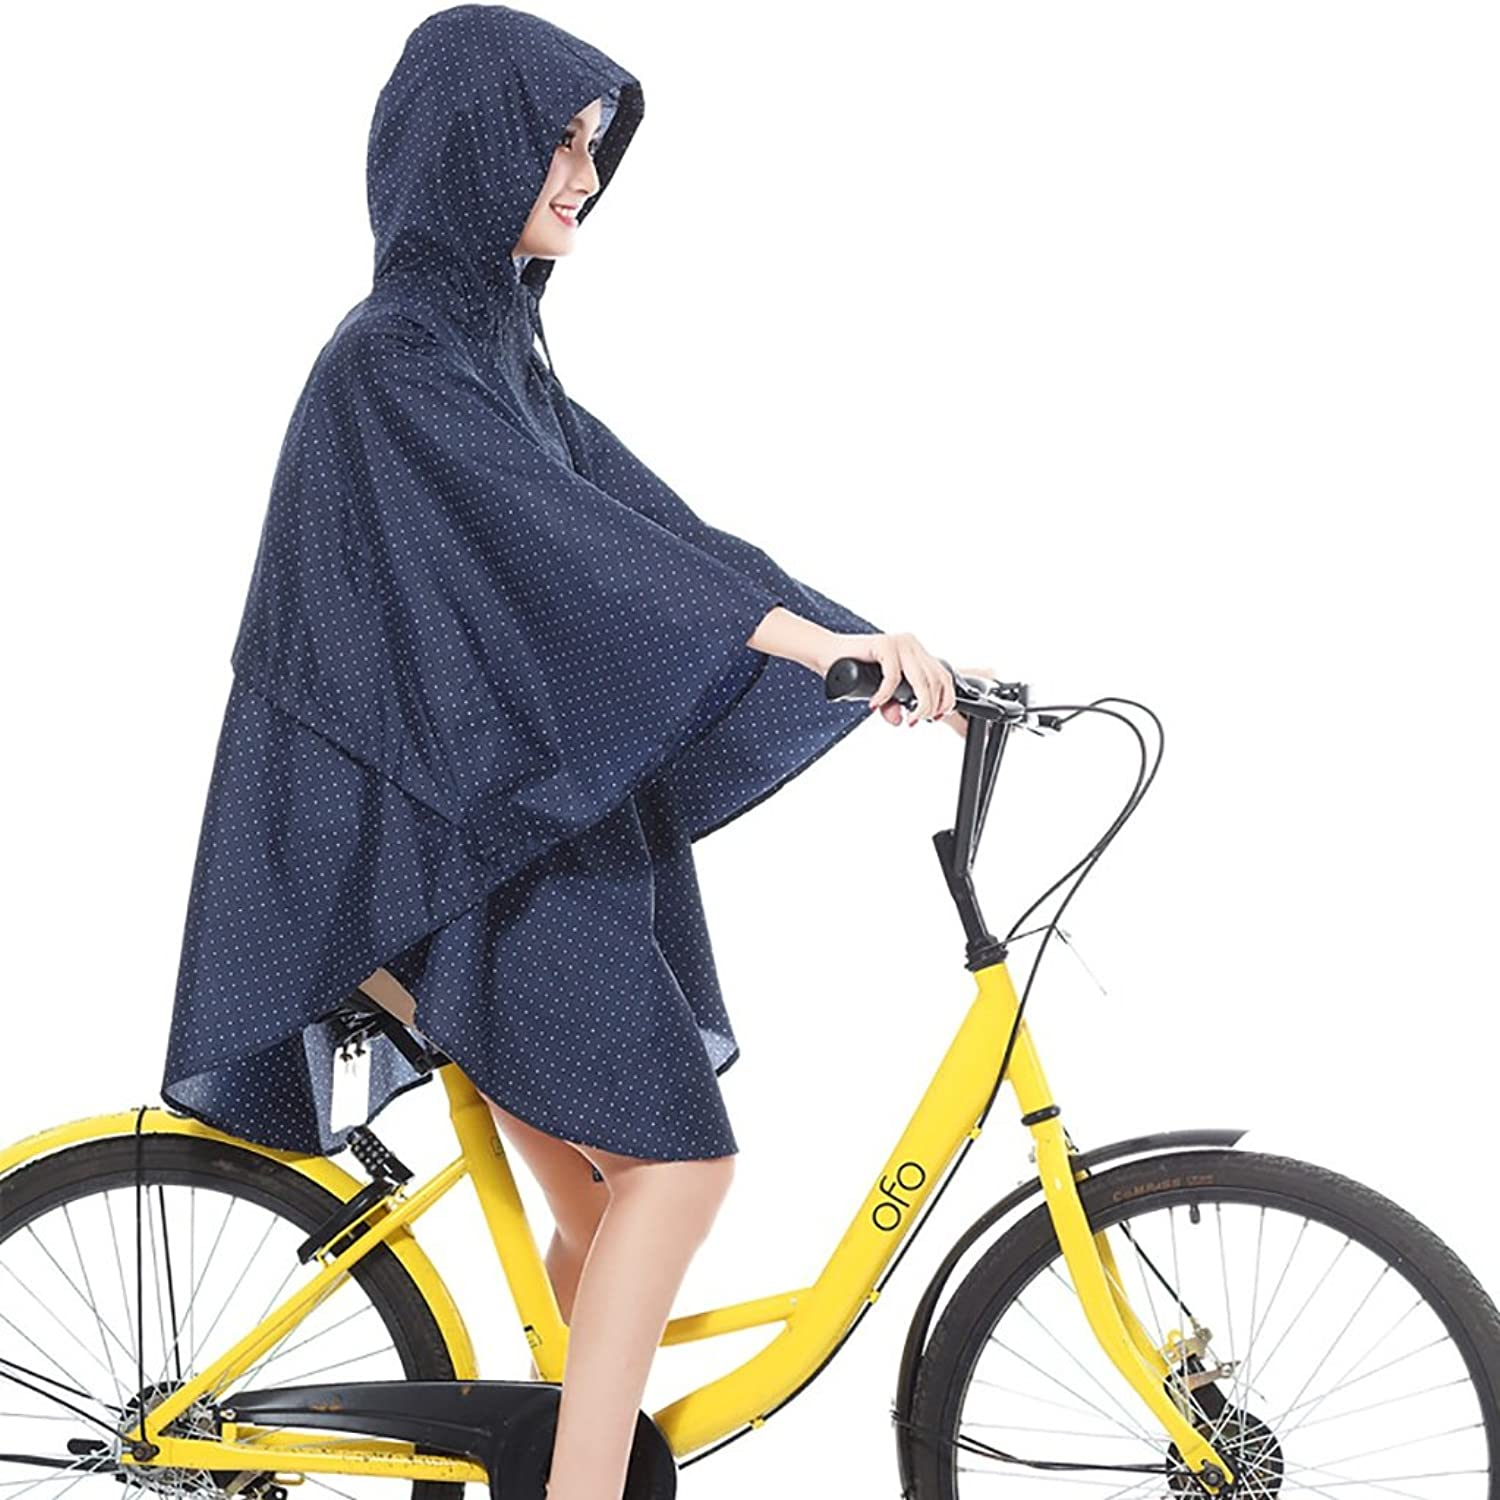 Raincoat Raincoat Poncho Cloak Men and Women Fashion Cycling Loose Large Size Tourism Waterproof Clothing Thin and Light Comfortable and Breathable (color   G)